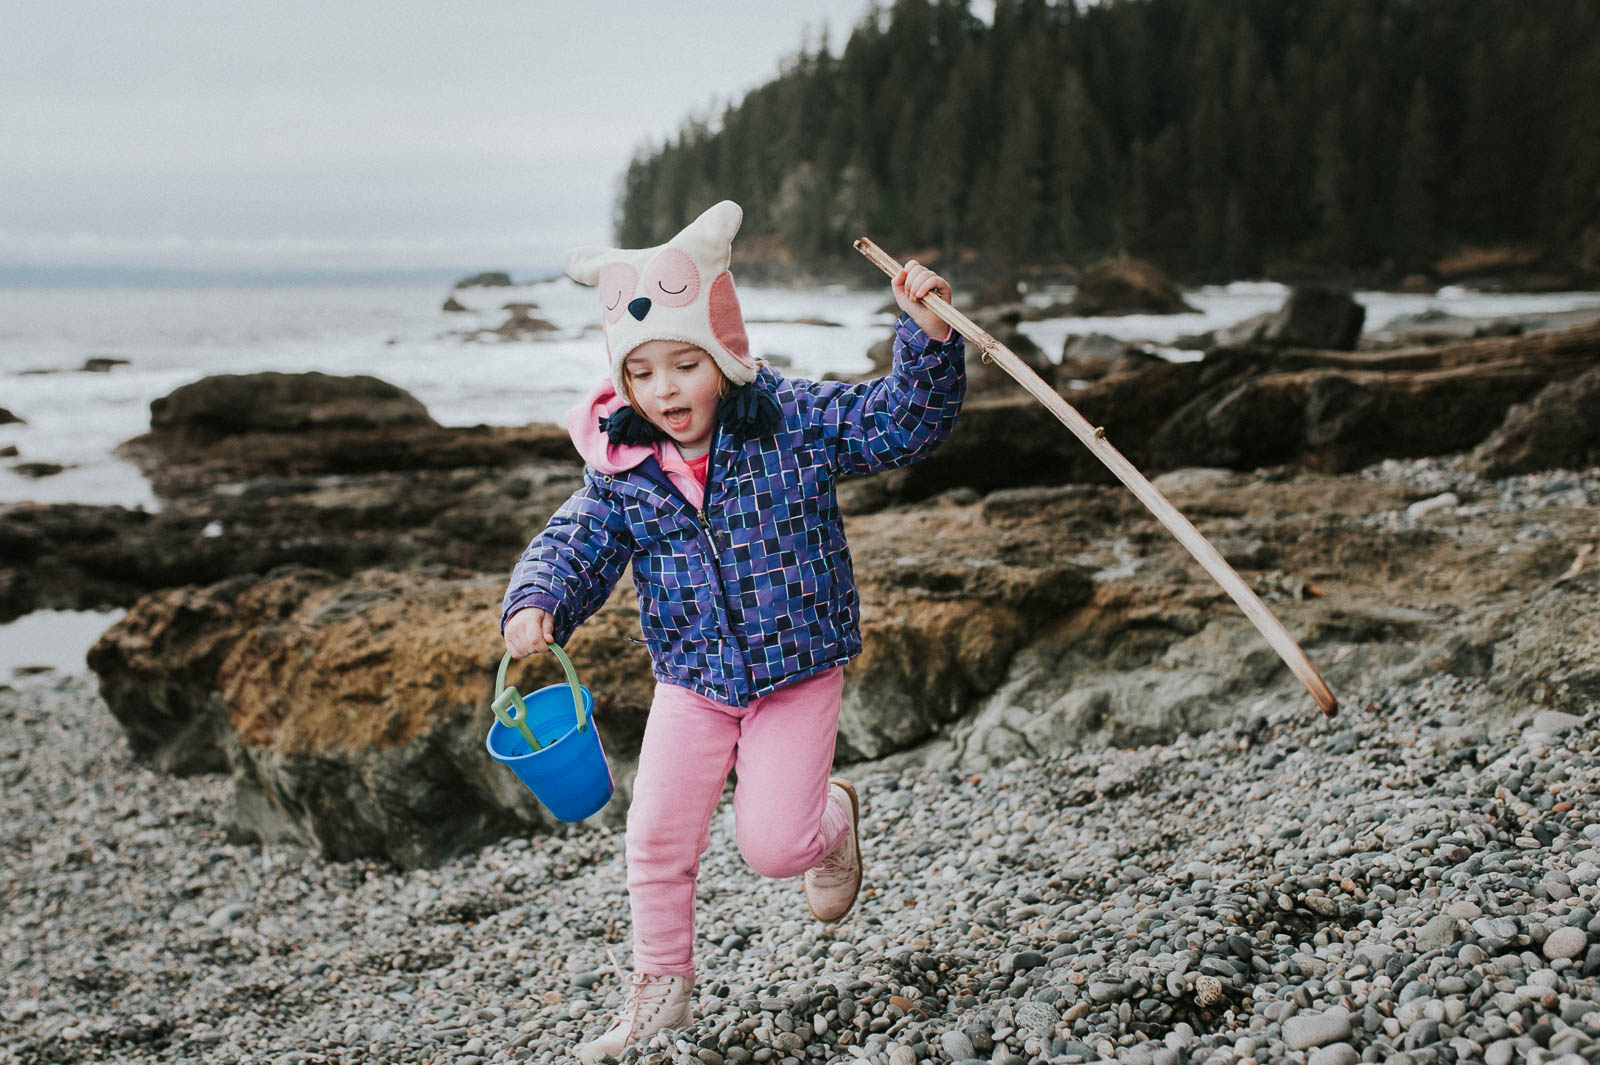 Photographing children with endless amounts of energy can be challenging. But, with these genius tips from the Click Pros, you'll be breezing through kid pictures from here on out!